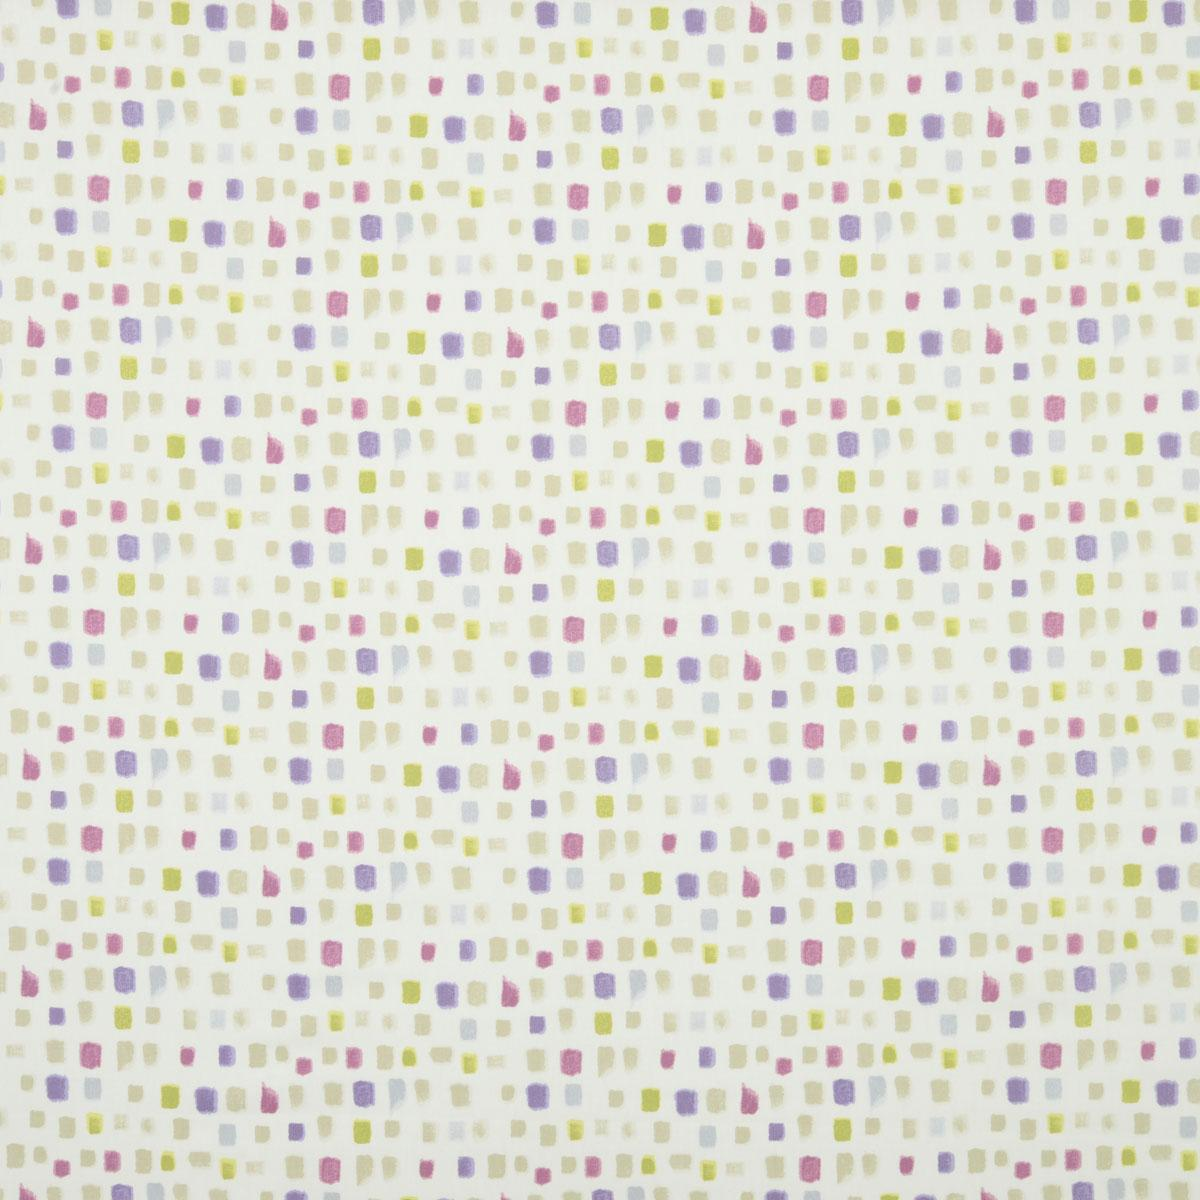 Pip curtain Fabric Lavender